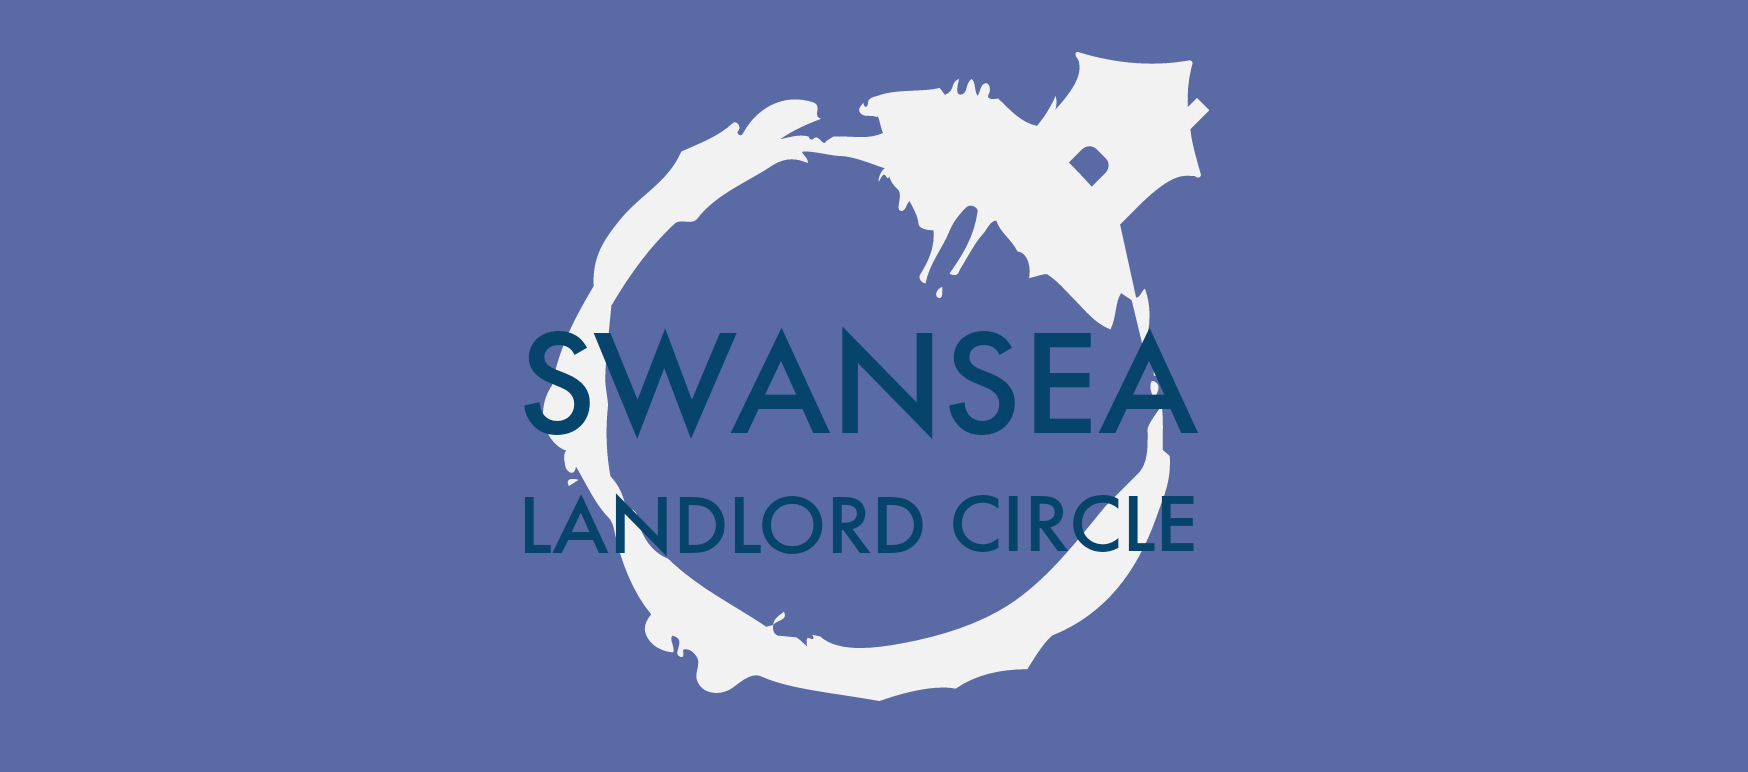 New Group for Swansea Landlords